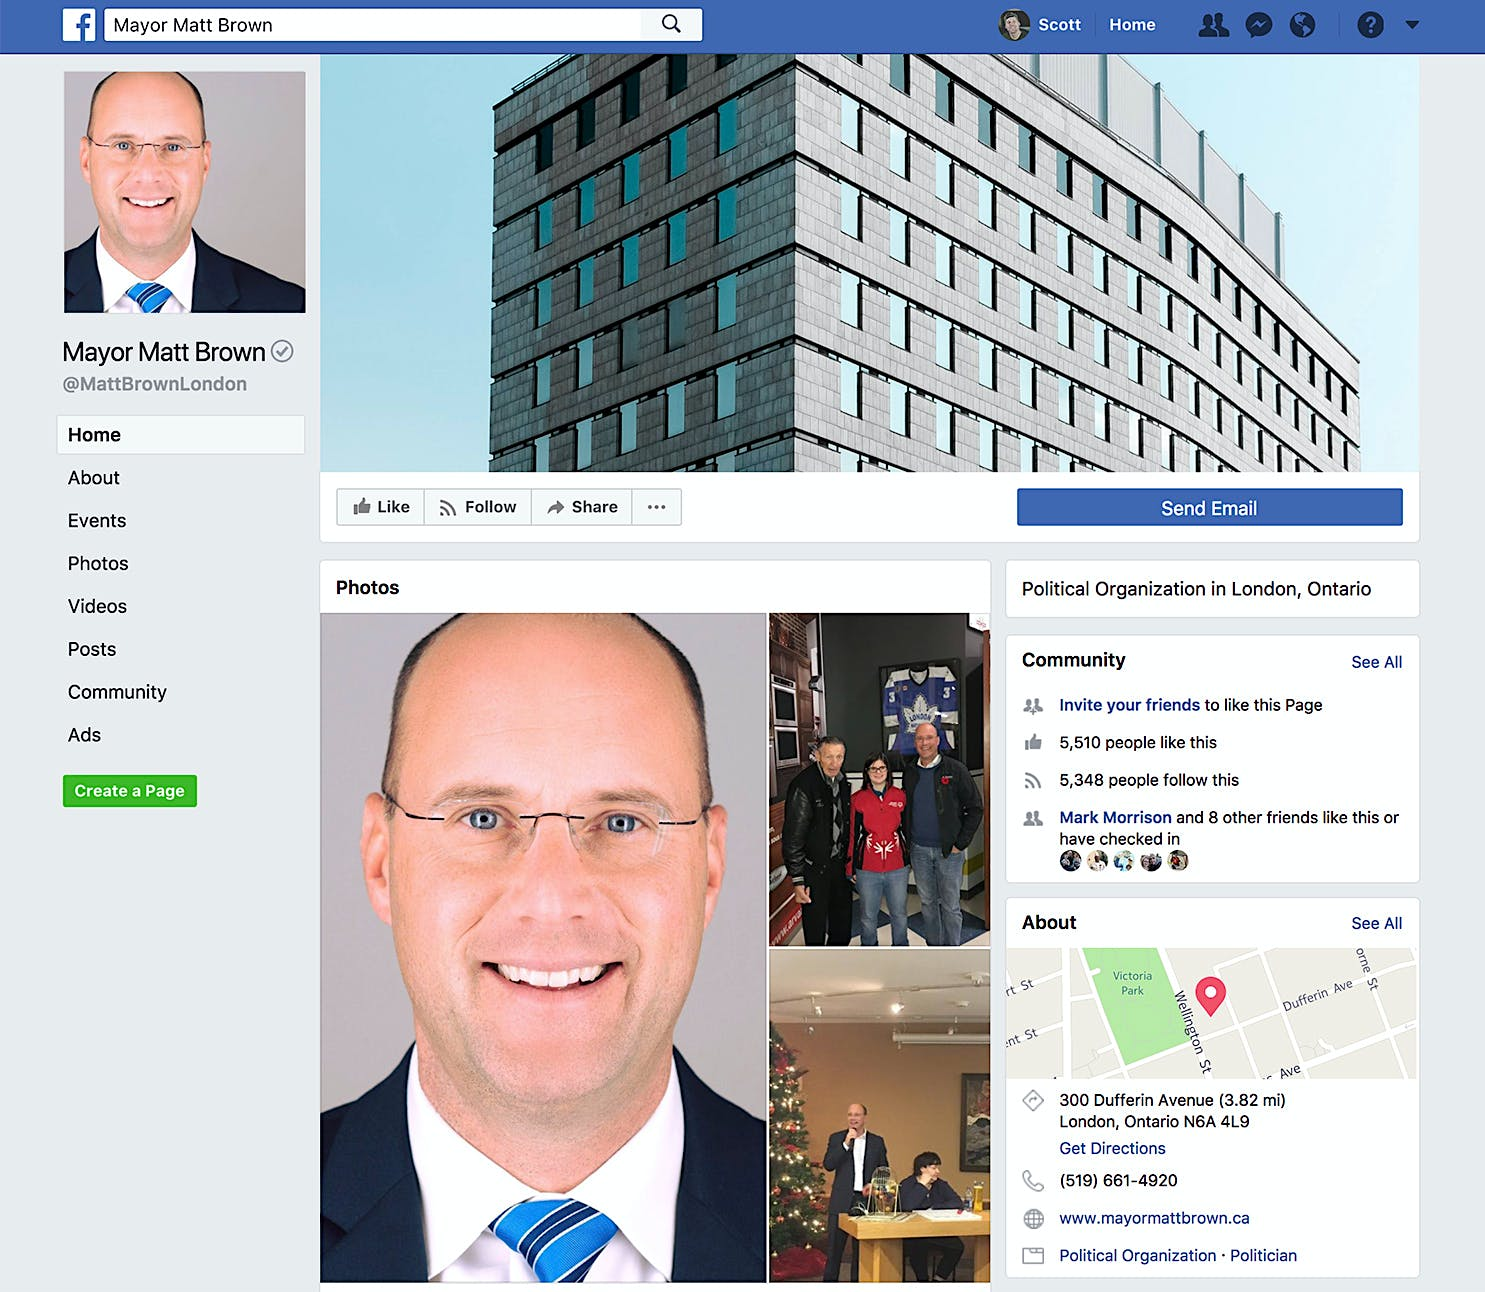 Mayor Matt Brown using one of my Architectural Photos shot in London